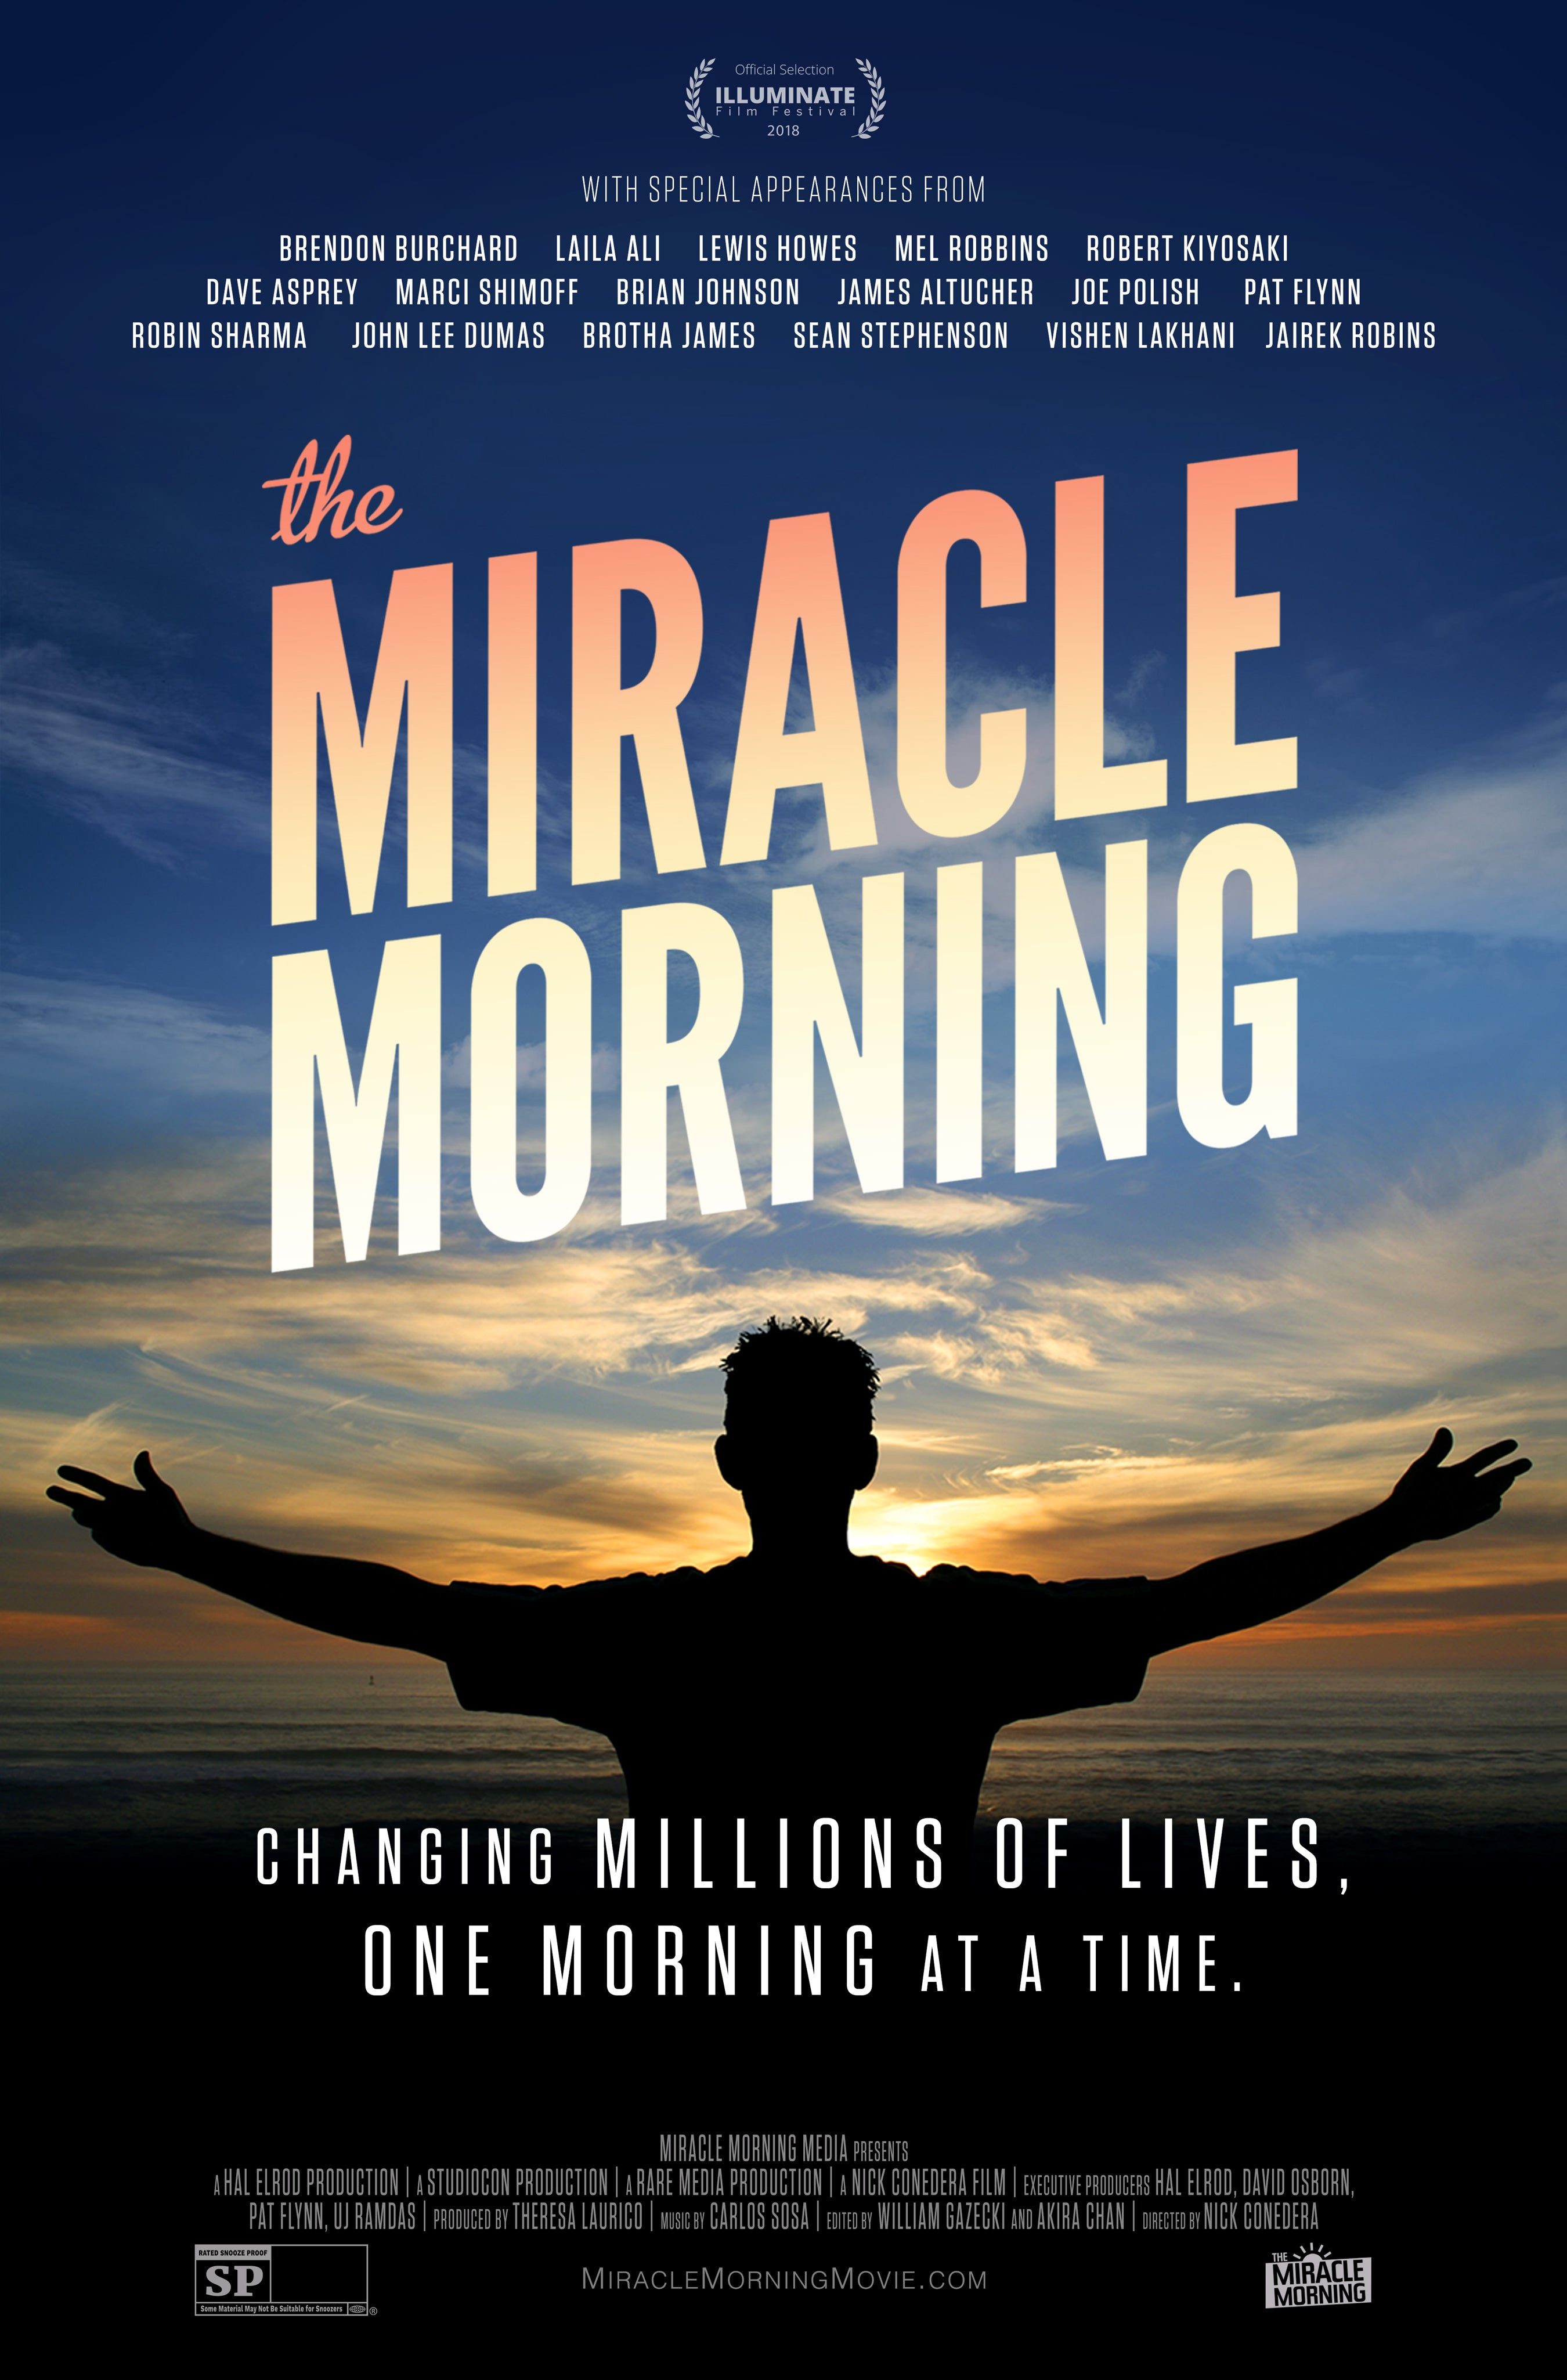 The Miracle Morning: The Beginning of A New Life